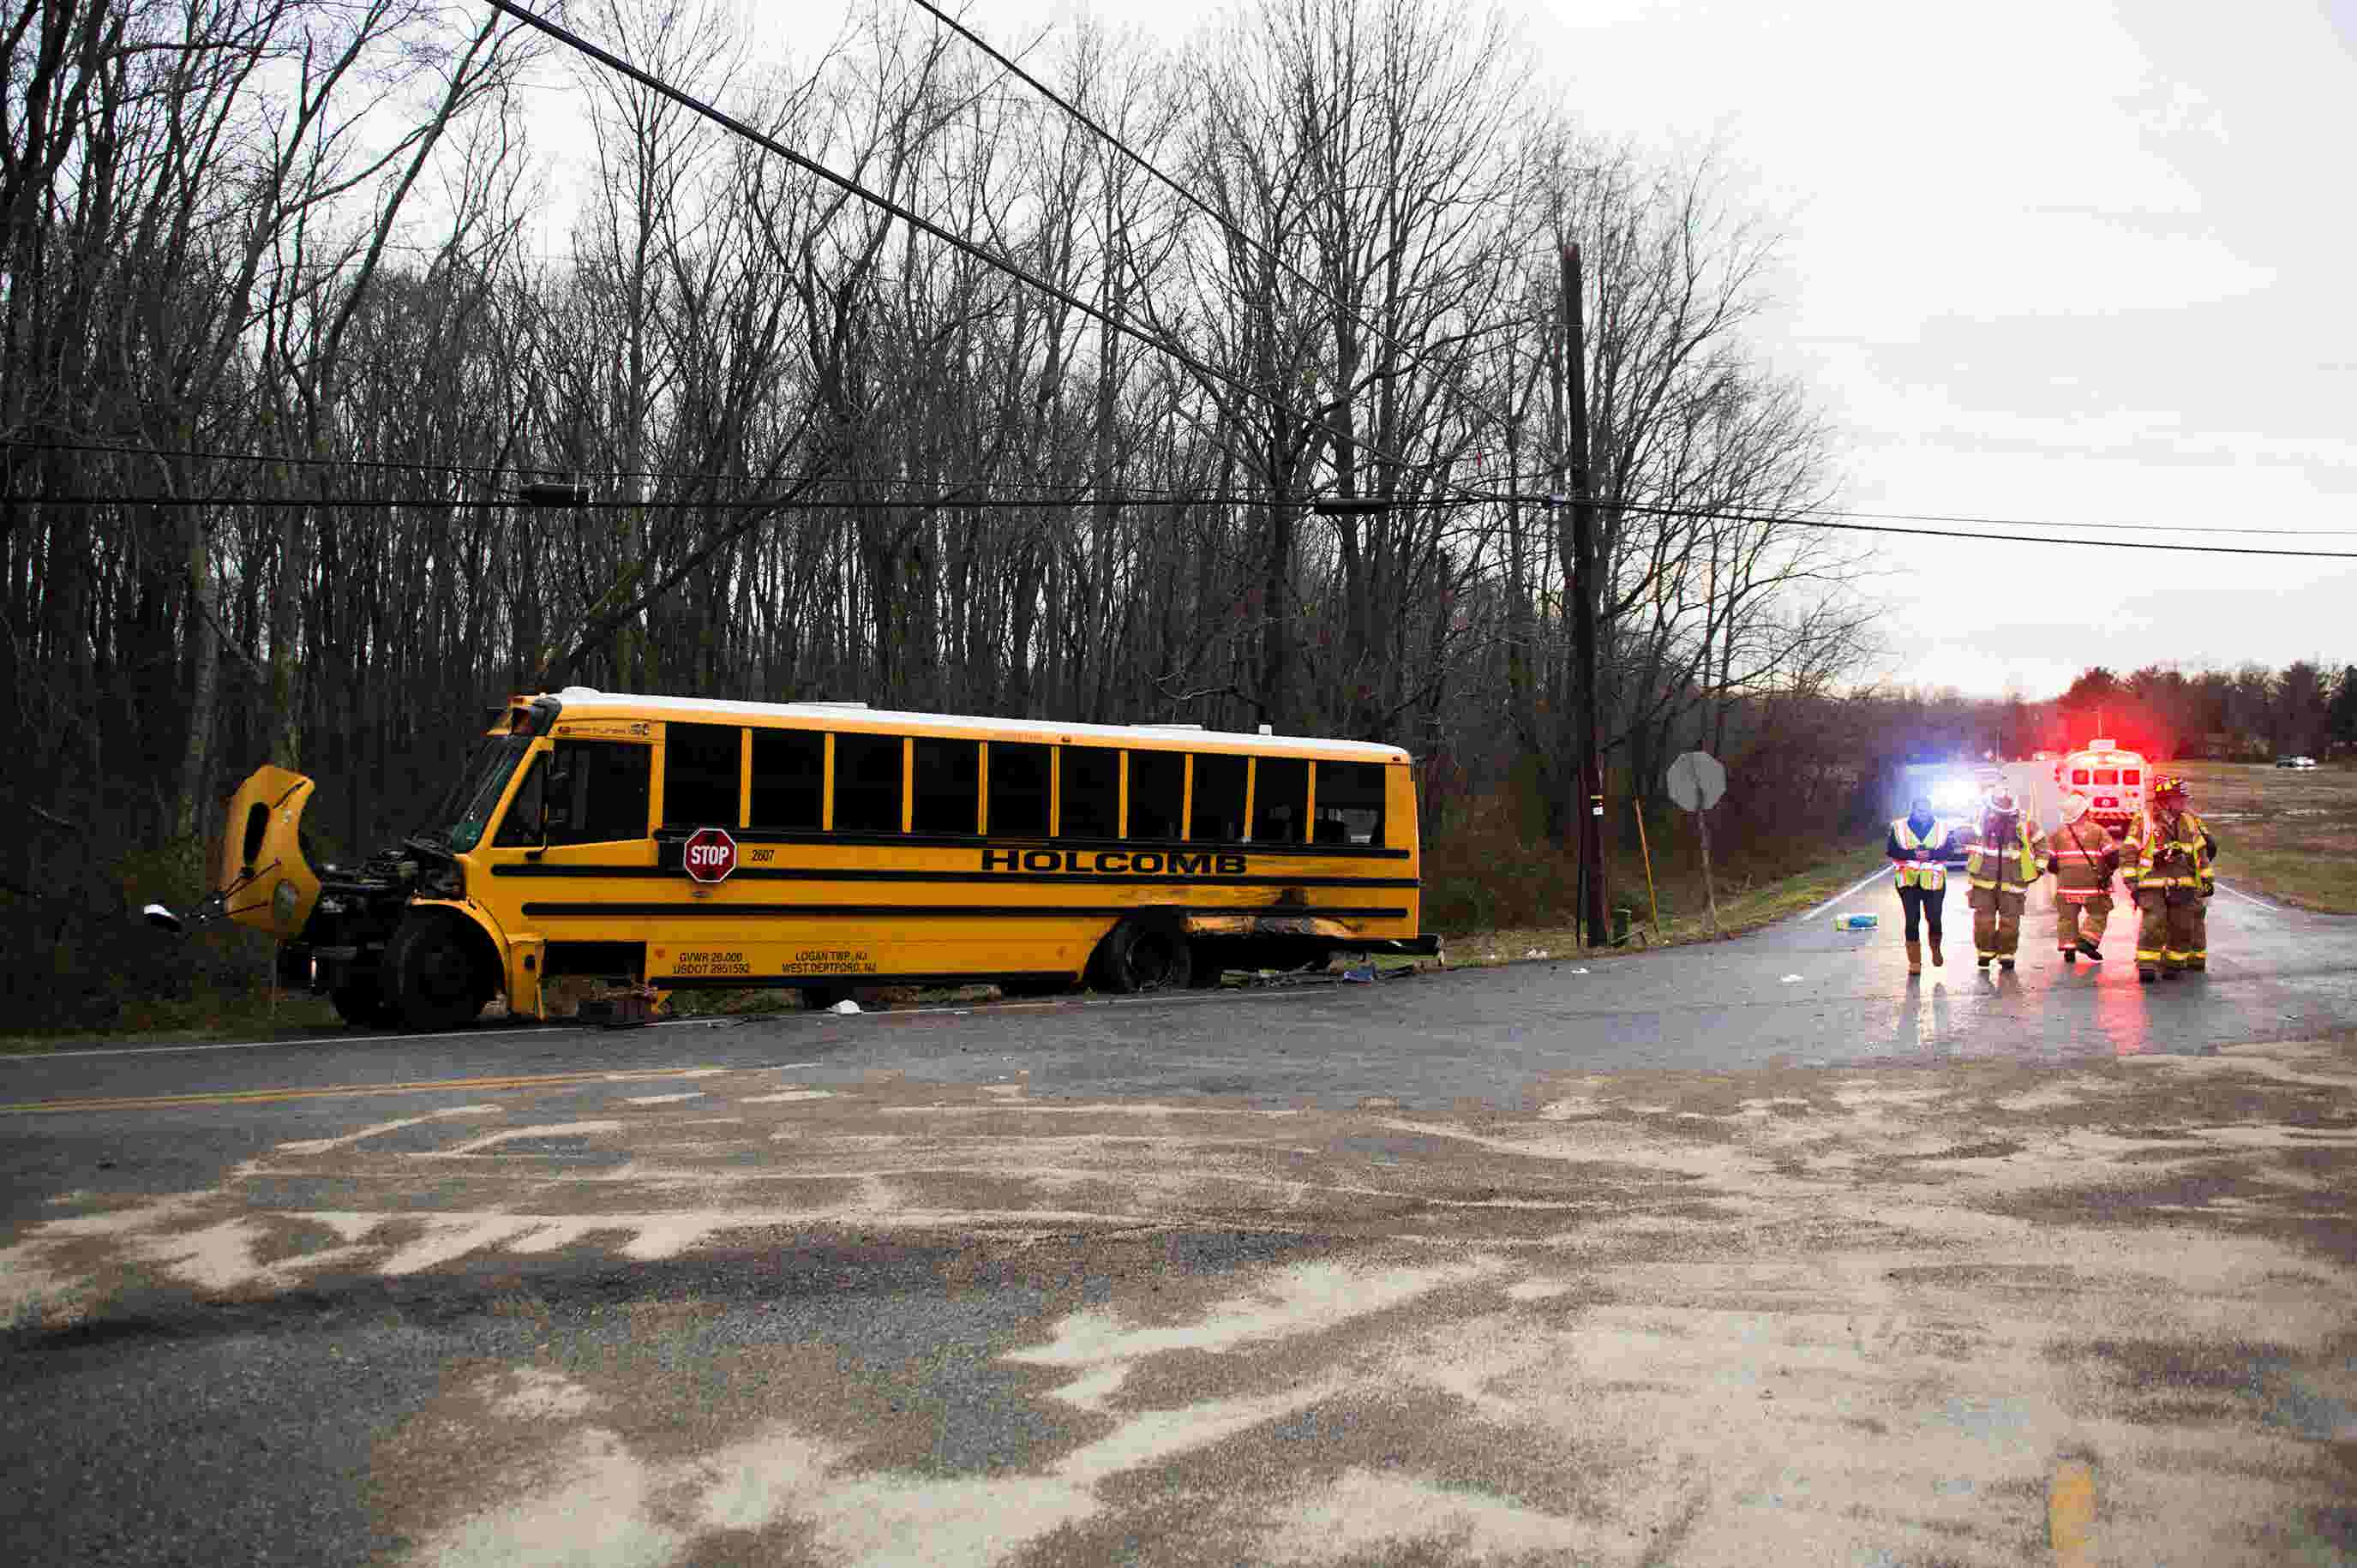 WATCH: Officials work a scene following collision between school bus and  tractor-trailer